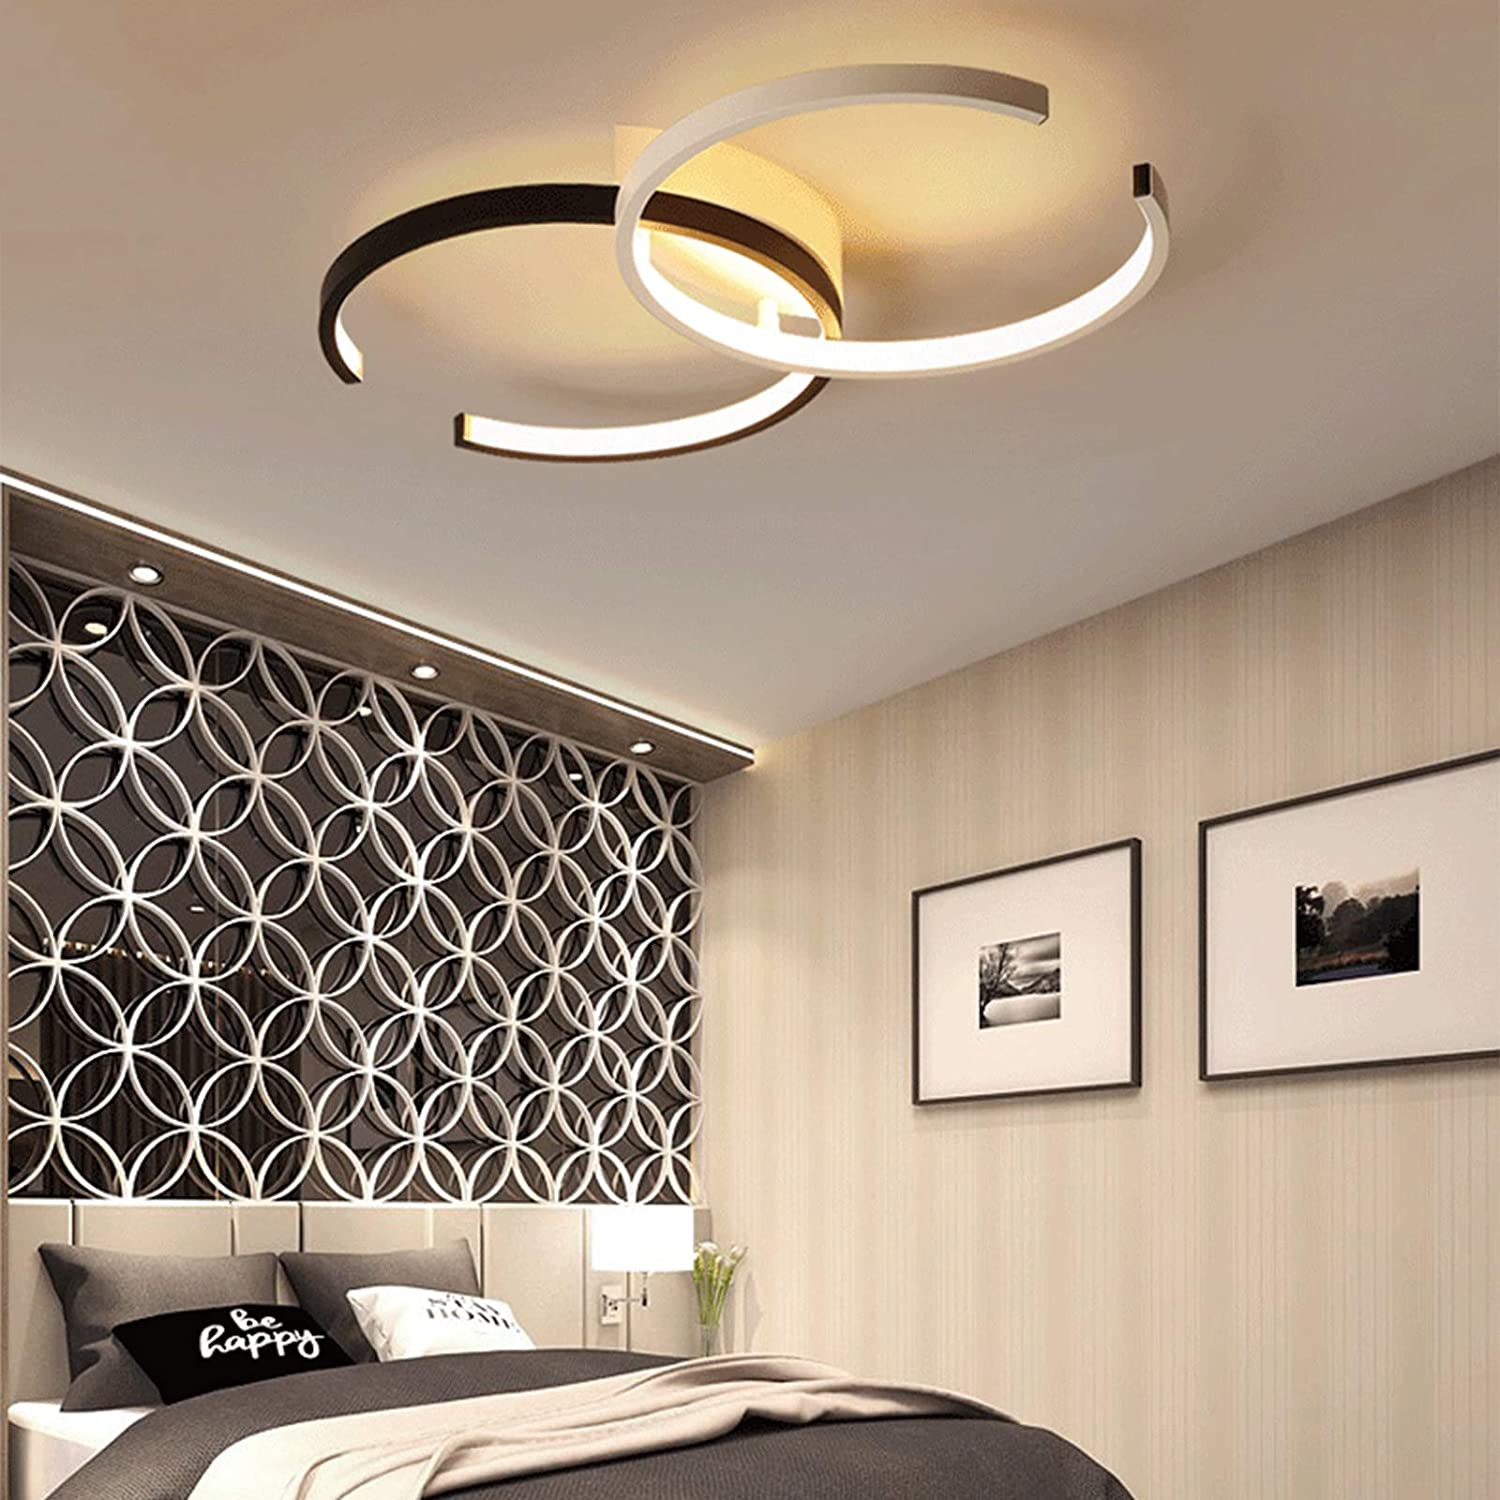 LED Ceiling Light,Modern Design Art Deco Dimmable with Remote Transitional  Chandelier Acrylic Flushmount Ceiling Fixture in White and Black Finish for